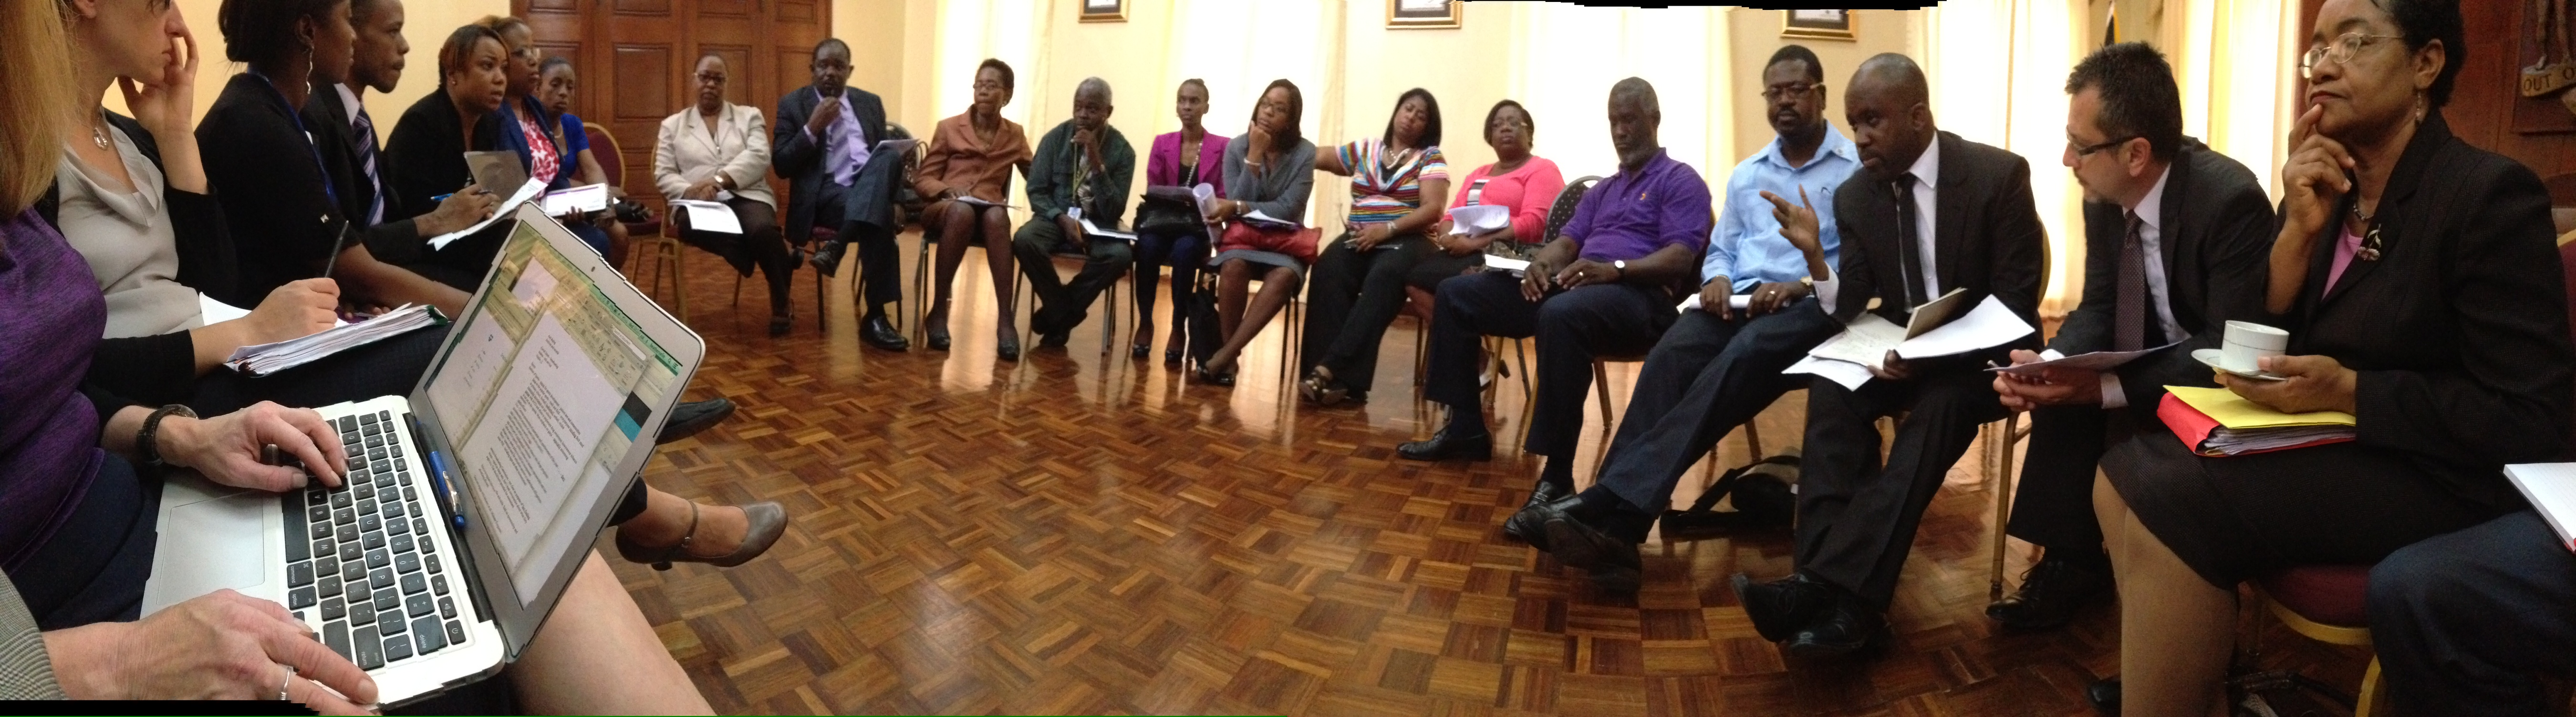 Meeting with stakeholders on education and communication matters (during the needs assessment mission in August 2014)